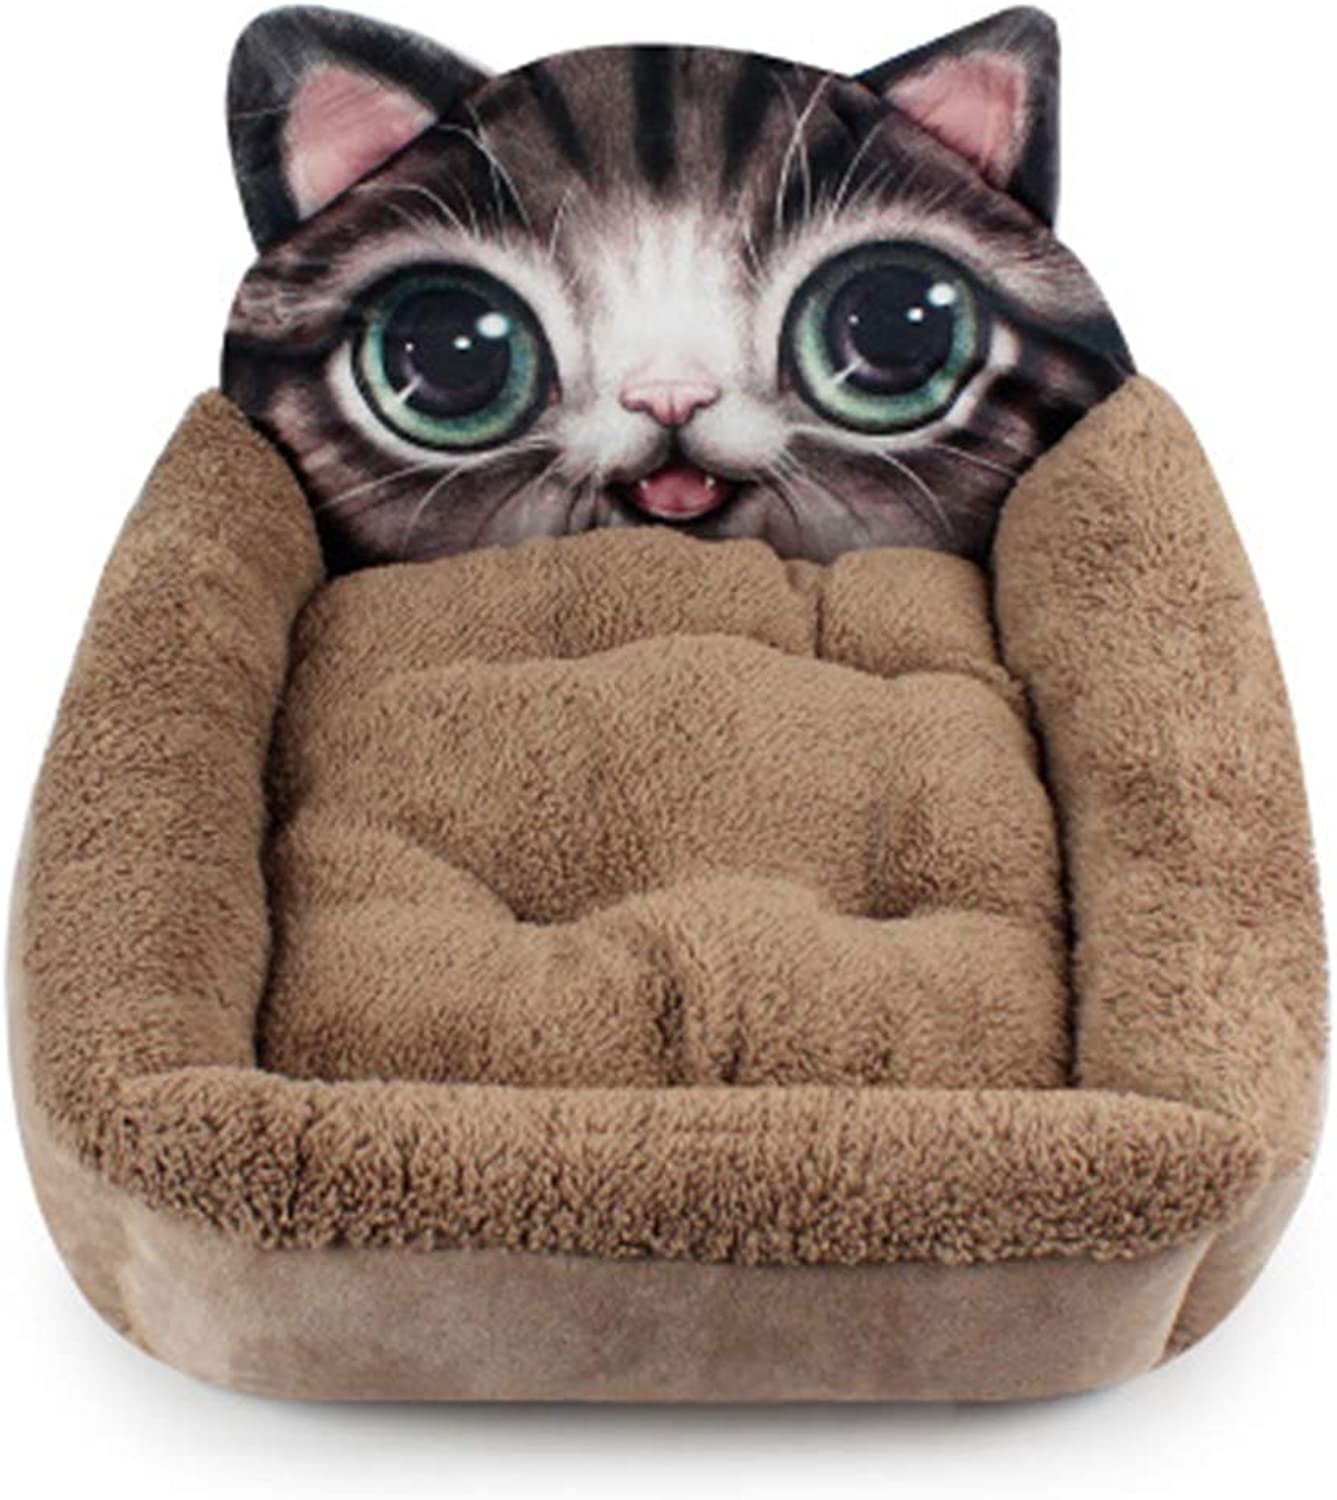 Jim Hugh 3D Cartoon Dog Beds Small Pets Cat Cushion Totgold Puppy Bed Blanket Winter Warm Soft Dogs Kennel Mat Pug House